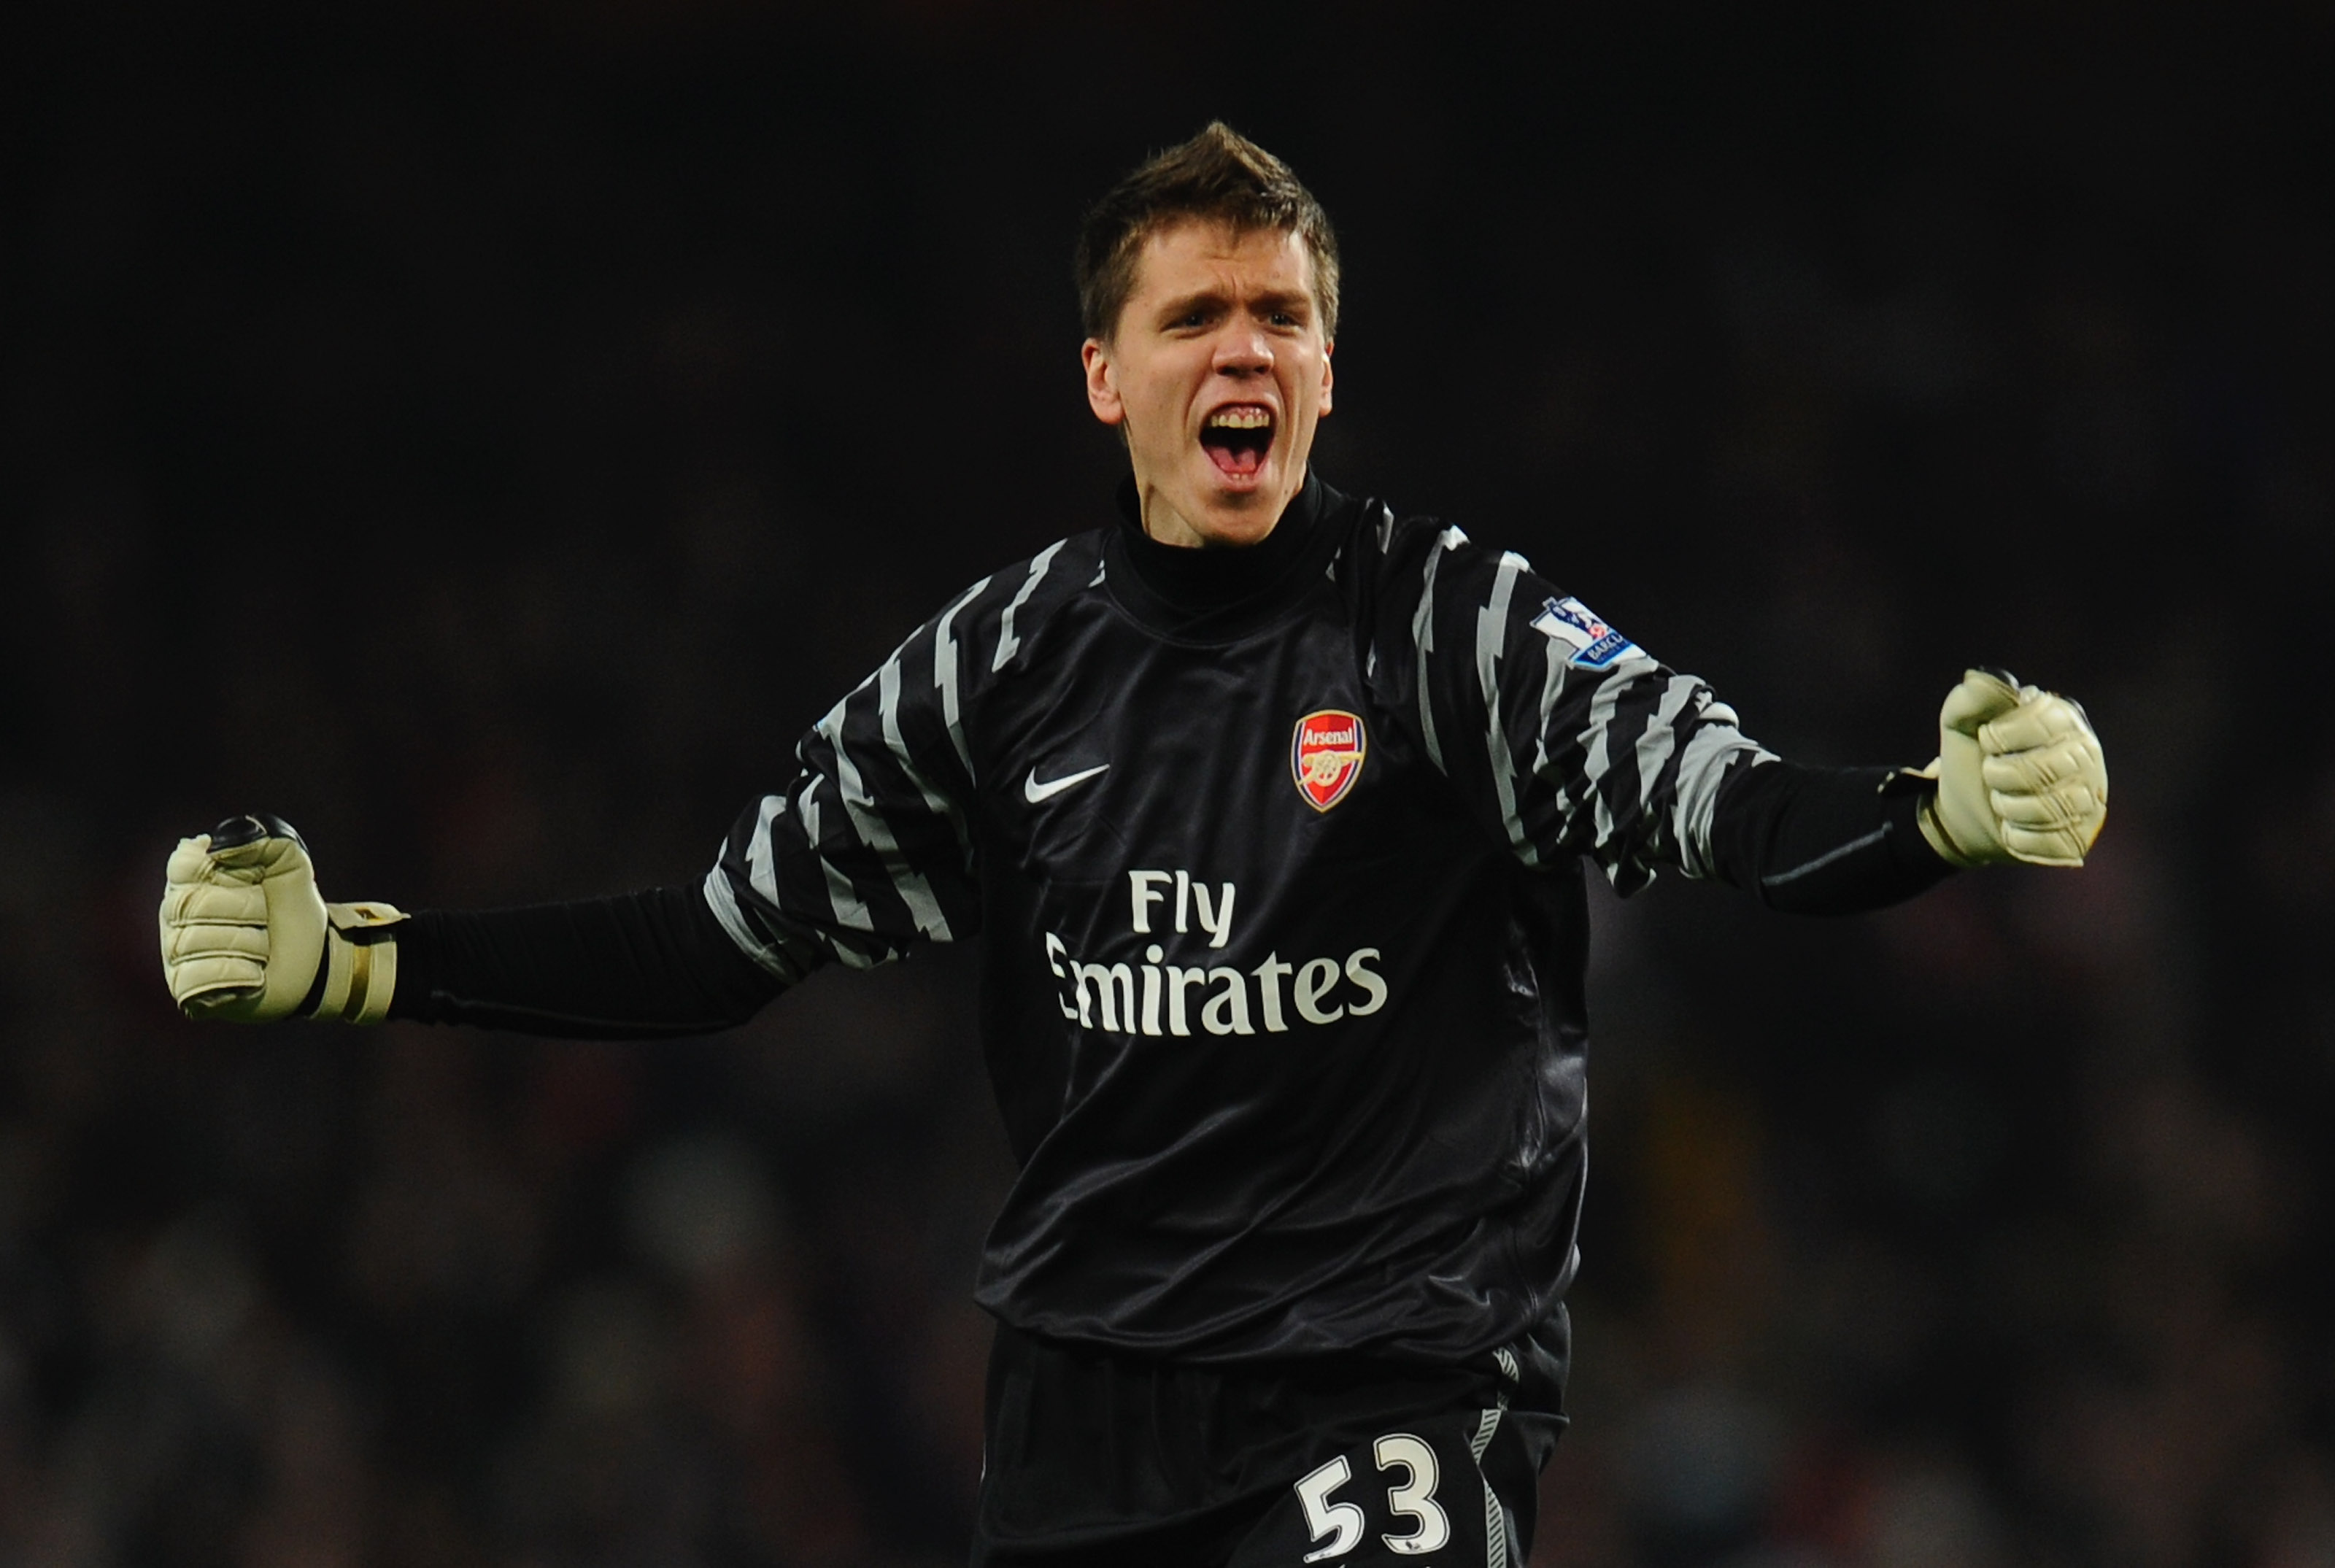 LONDON, ENGLAND - JANUARY 25:  Wojciech Szczesny of Arsenal celebrates during the Carling Cup Semi Final Second Leg match between Arsenal and Ipswich Town at Emirates Stadium on January 25, 2011 in London, England.  (Photo by Clive Mason/Getty Images)